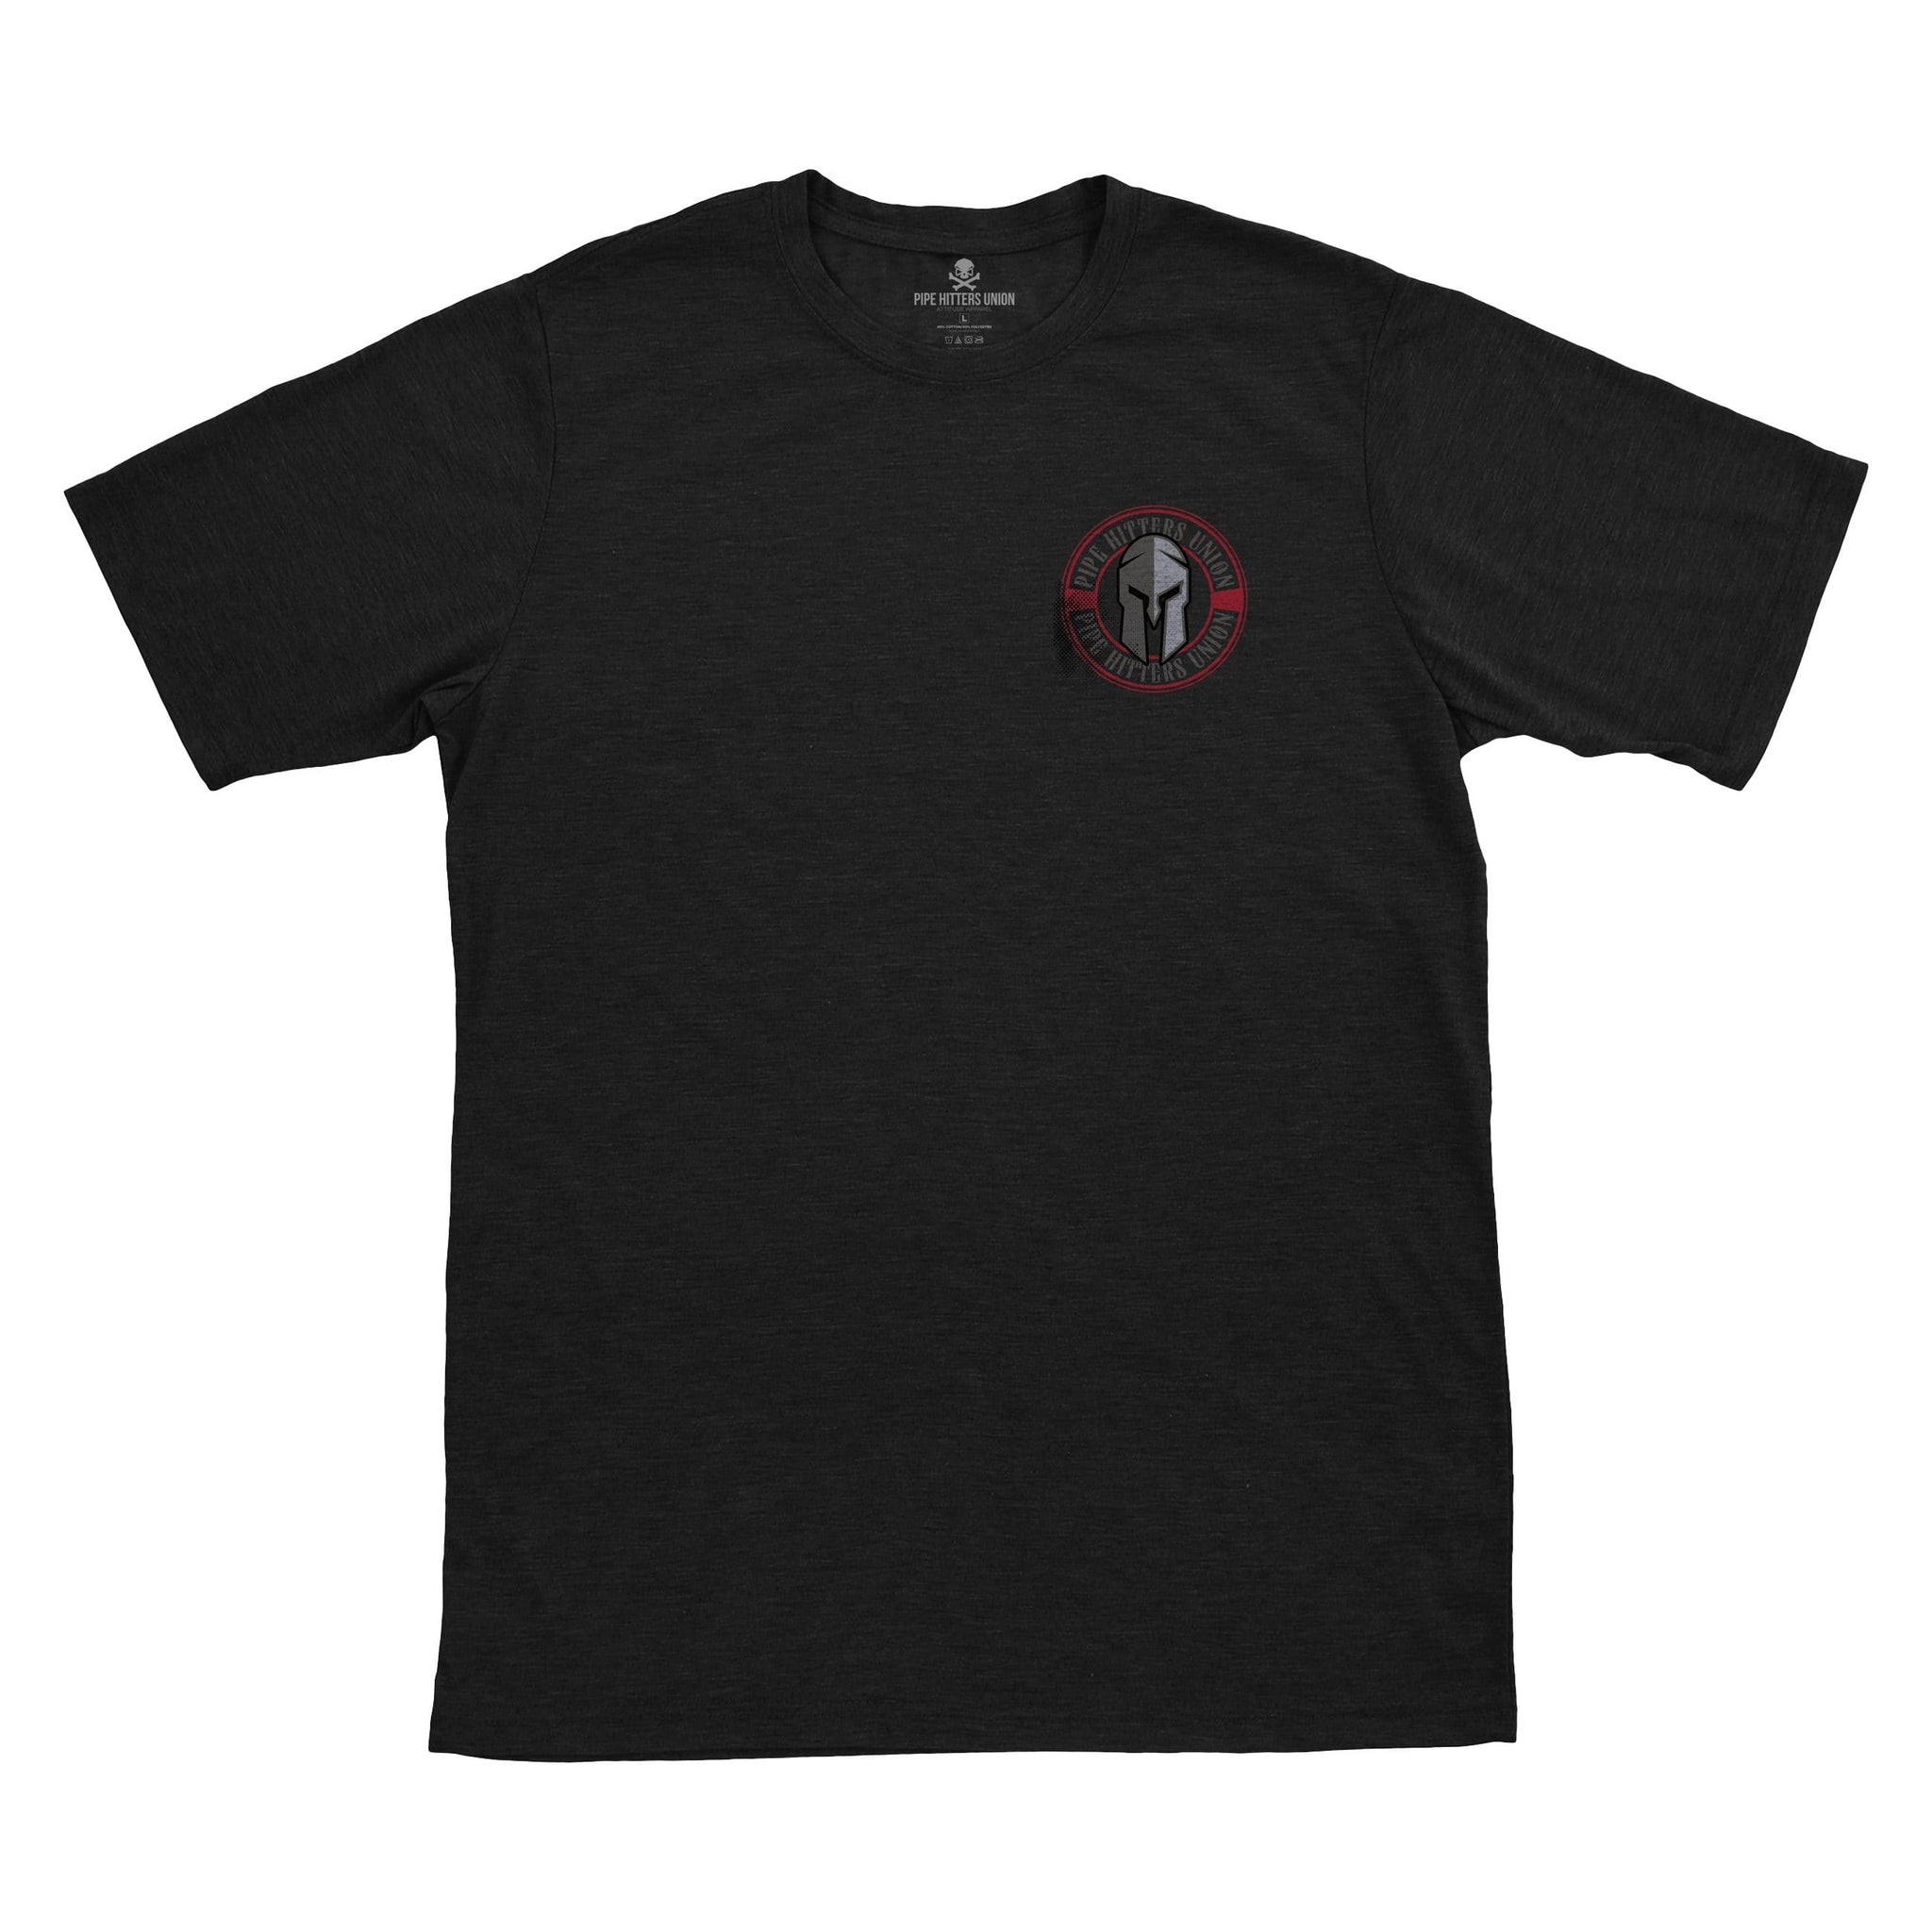 Harden Steel -  - T-Shirts - Pipe Hitters Union